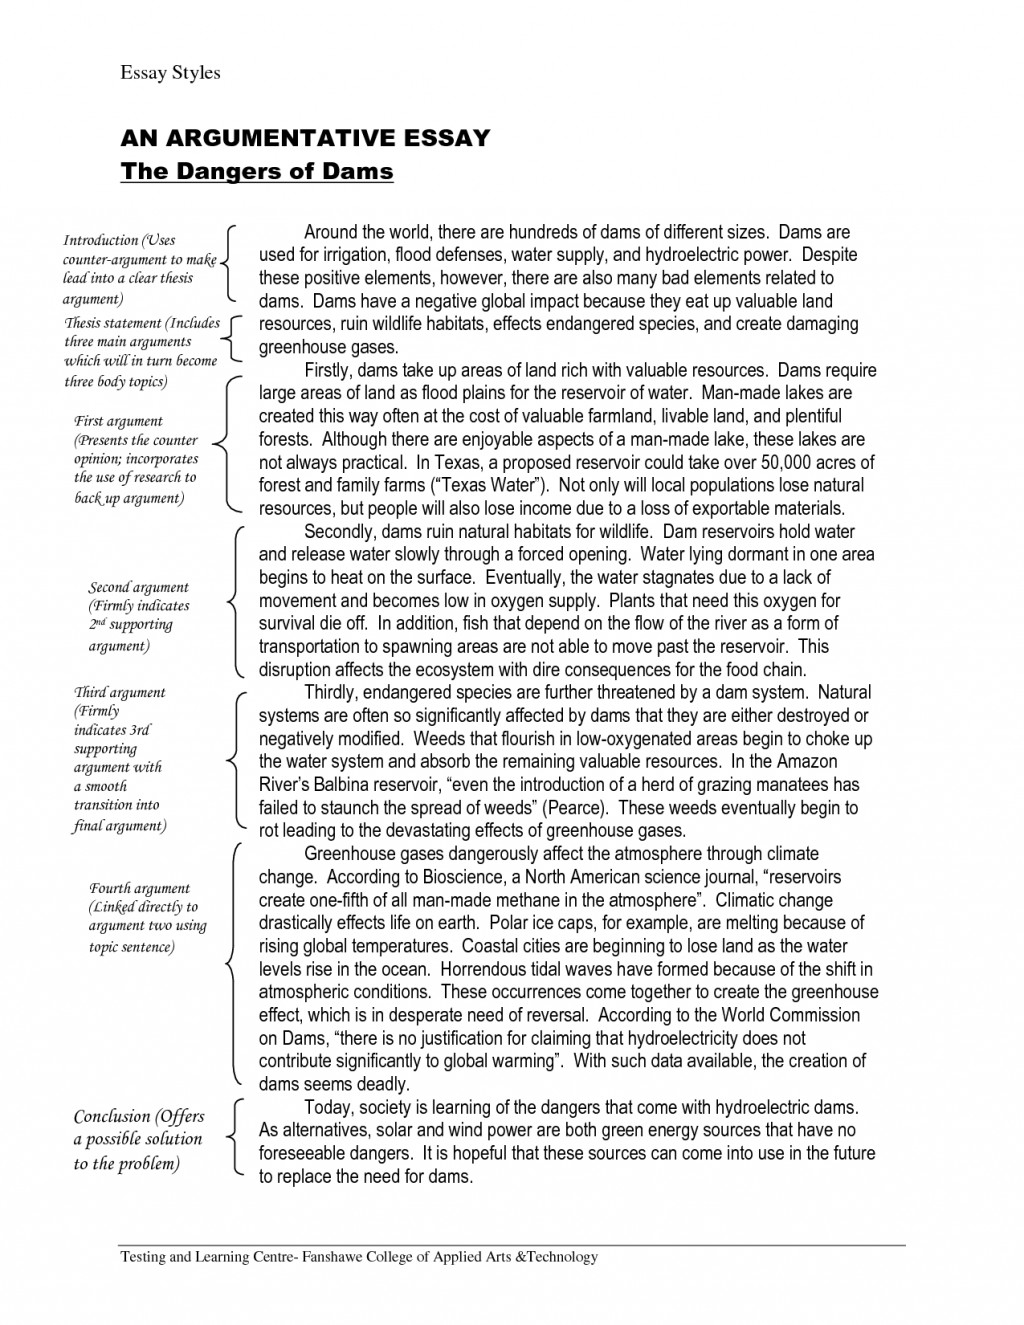 003 Bco7lvomsg Argumentative Essay Introductions Awesome Introduction Examples Synthesis Example Good Large